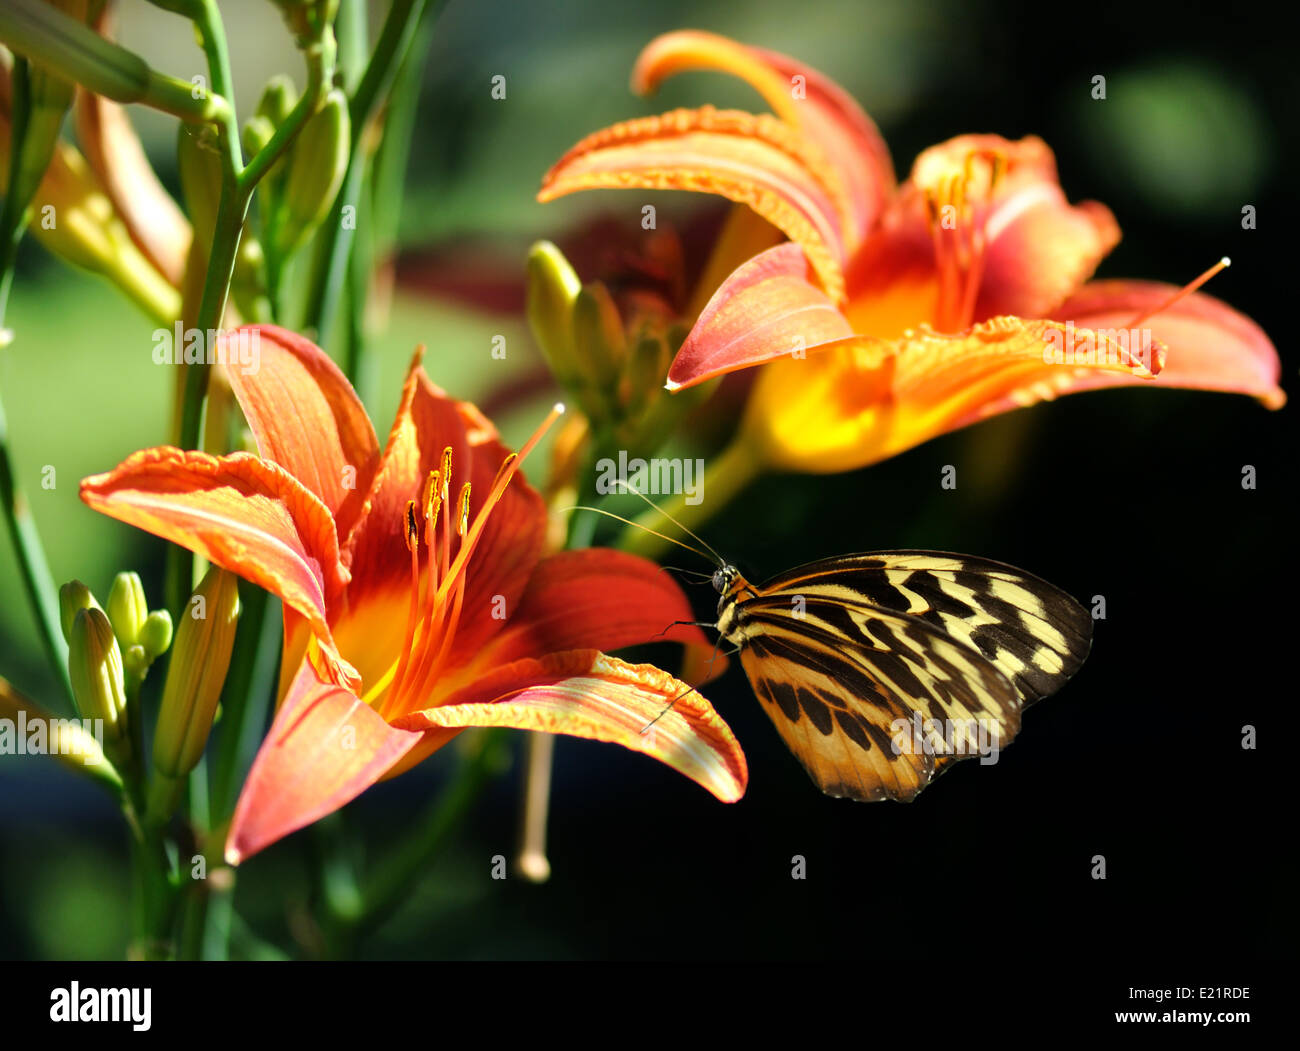 bef199f4e butterfly on a lily flower Stock Photo: 70111146 - Alamy